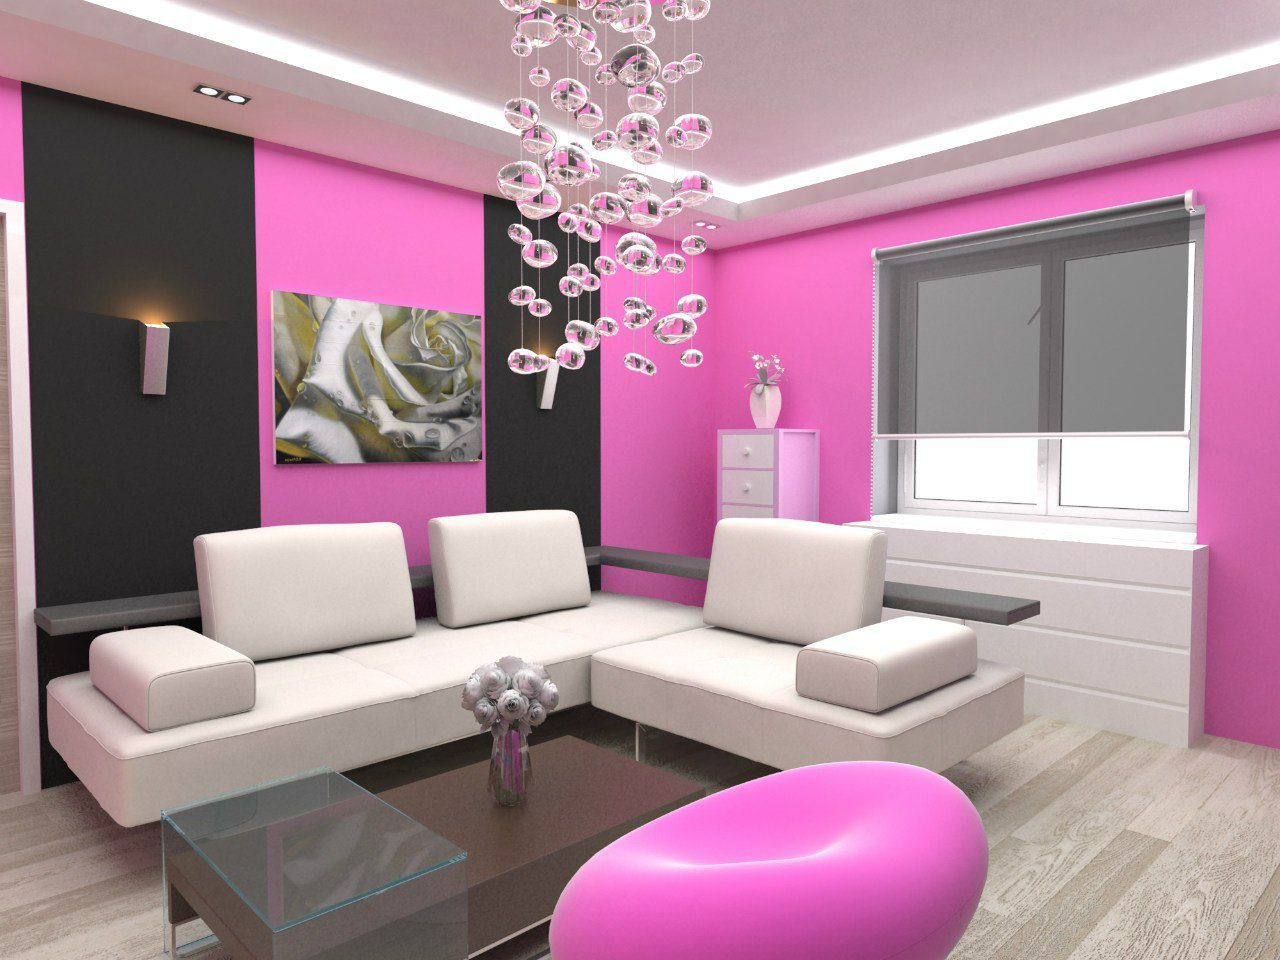 Bedroom paint designs pink - Pink And Gray Room Ideas Pink Wall Paint For Living Room